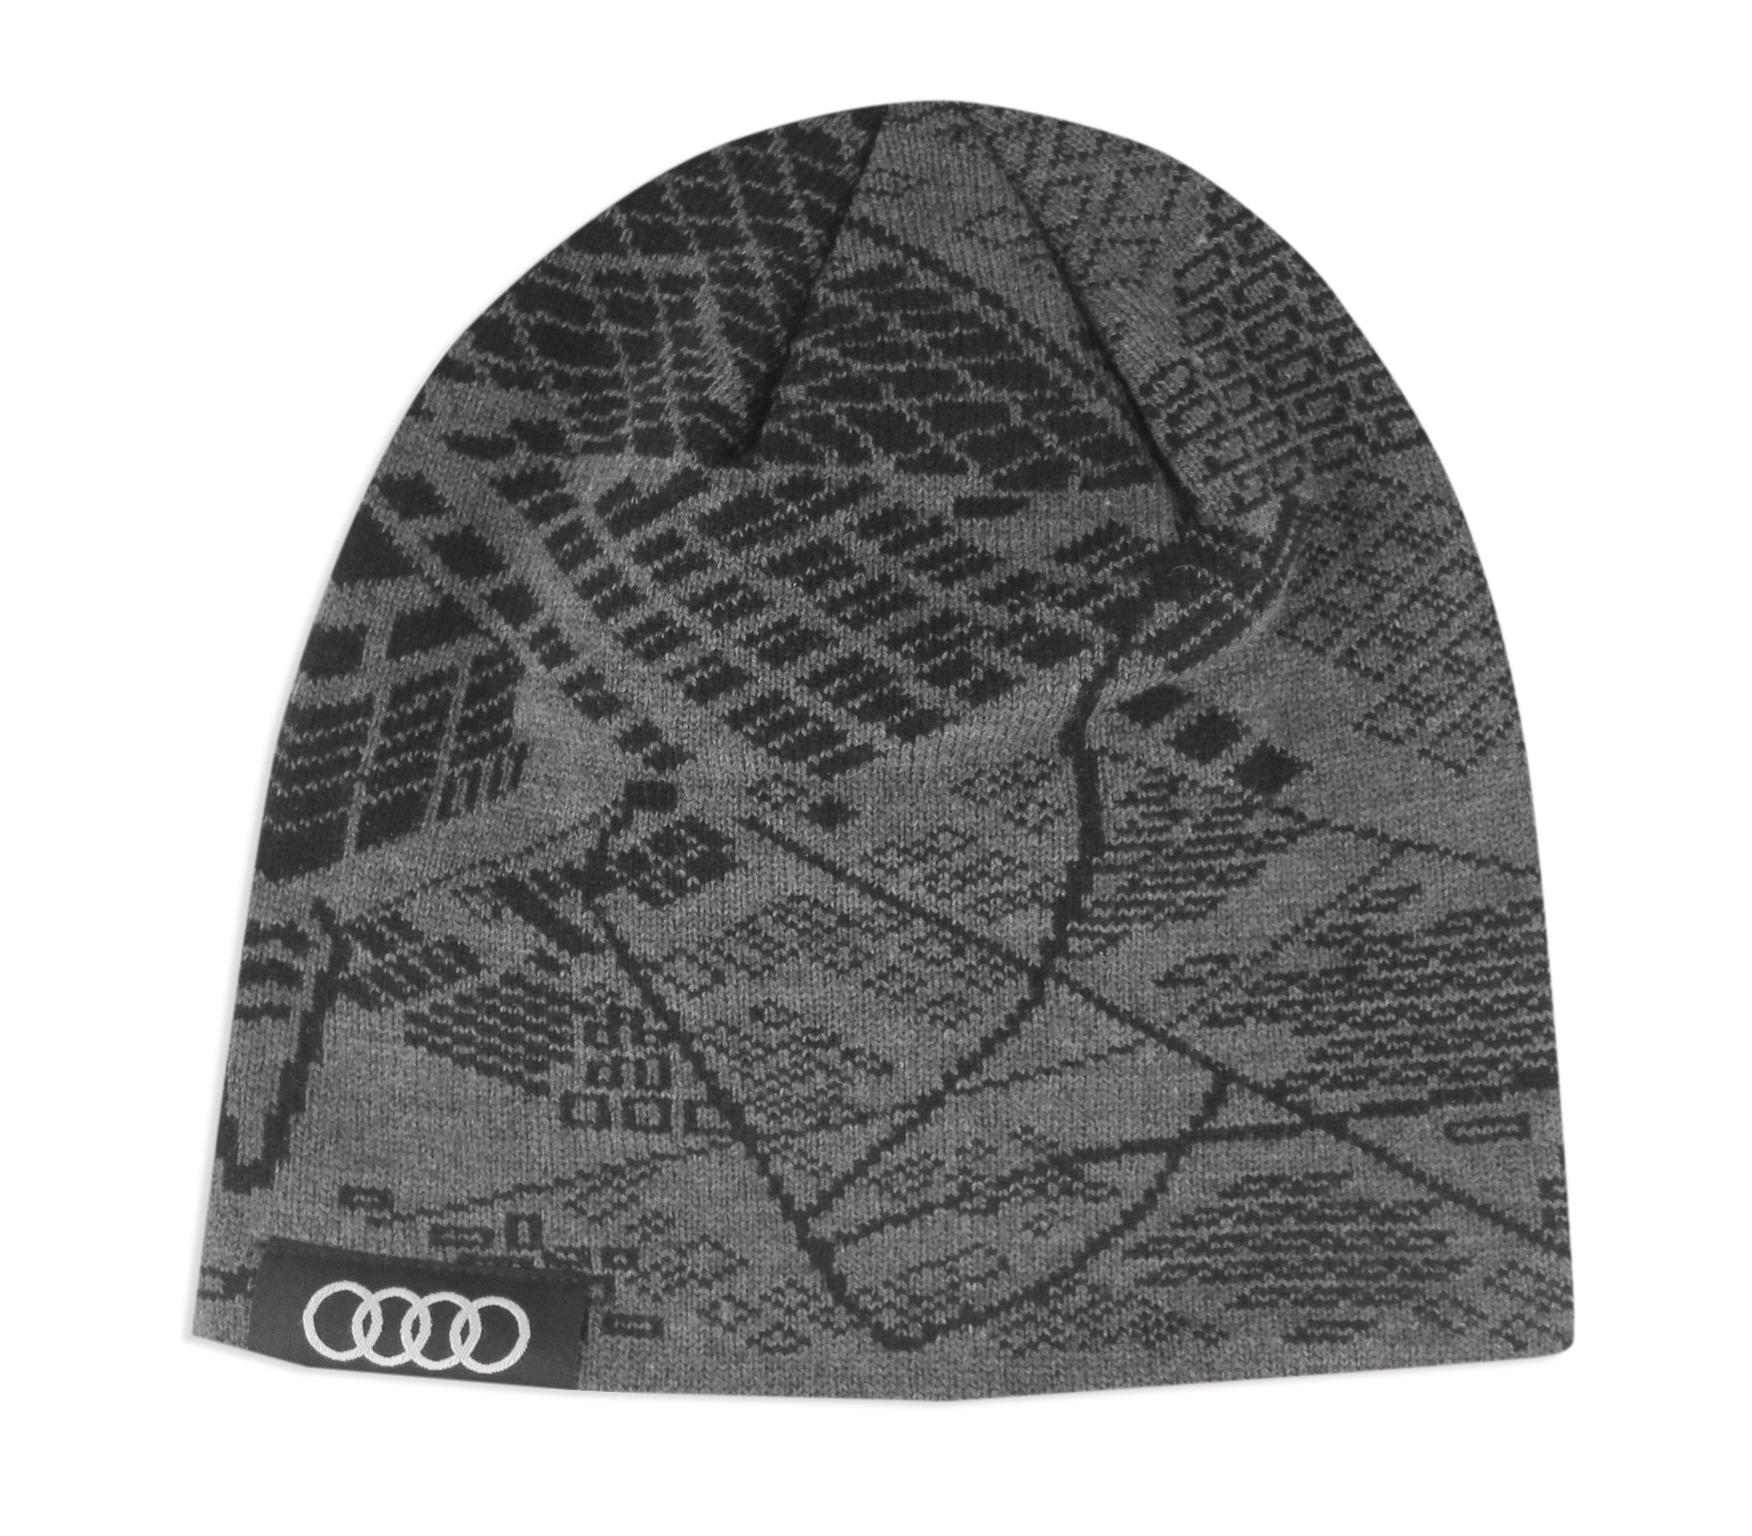 Acm4400 Audi Ingolstadt Germany Design Map Beanie